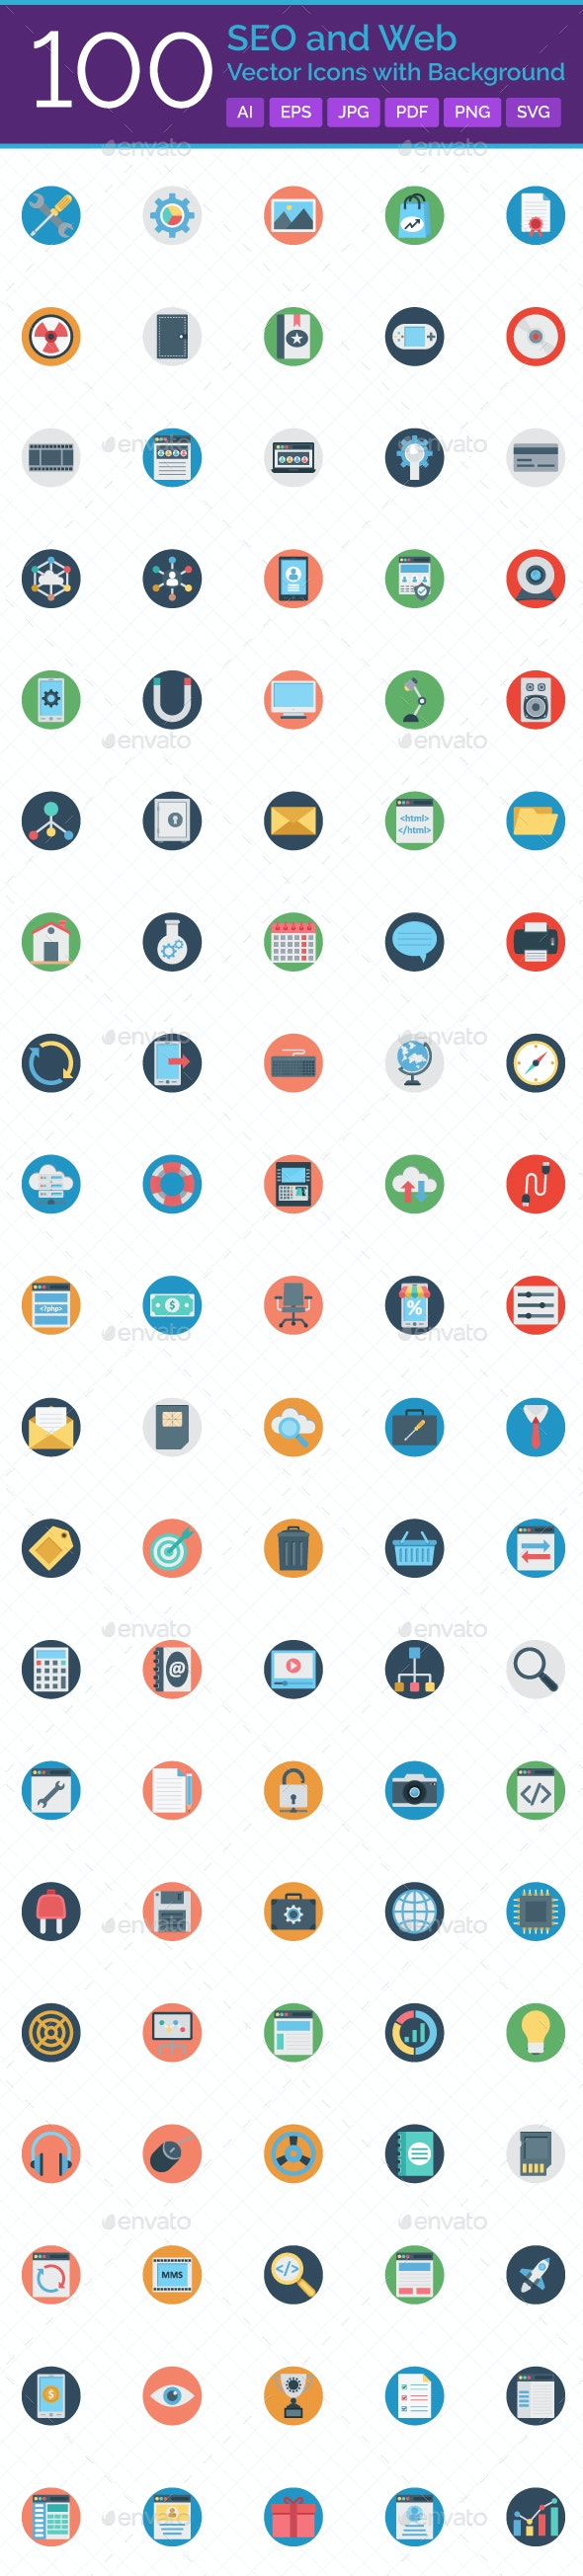 100 SEO And Web Vector Icons with Background - Icons